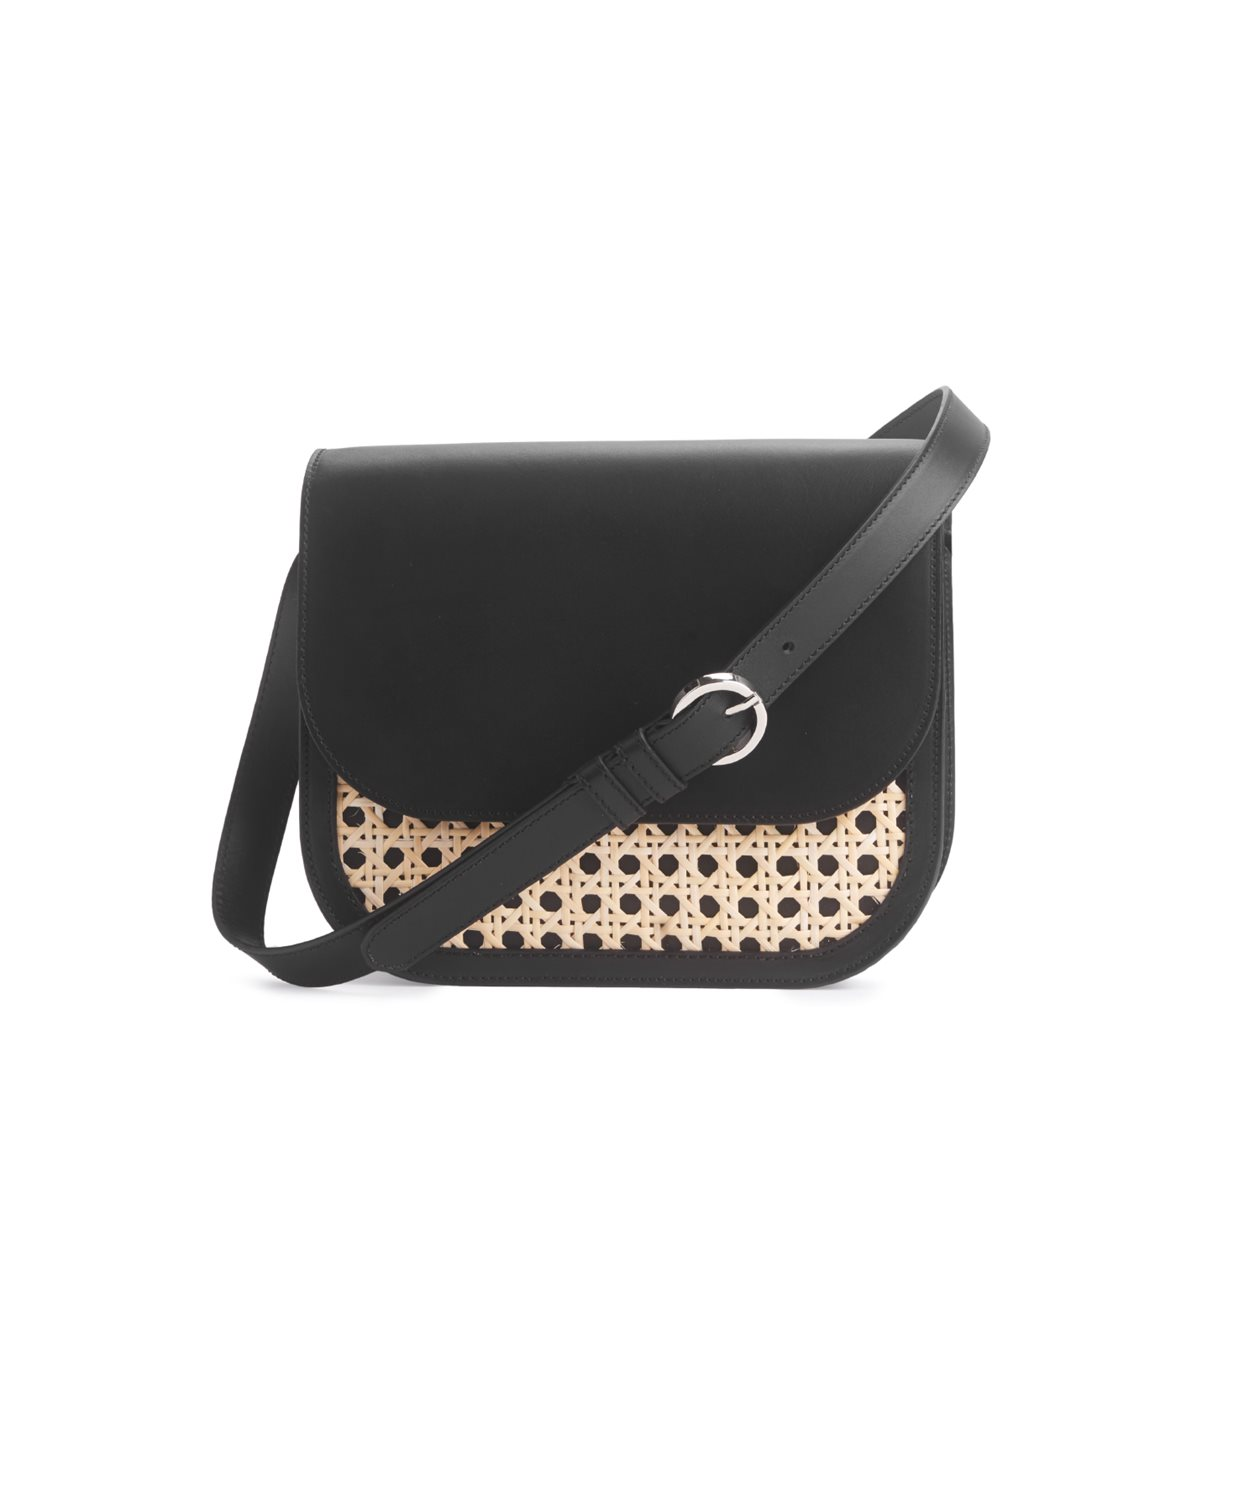 Palmgrens - EO Shoulder Bag Svart - Genuine handcrafted leather ... 88487e6e18c0d